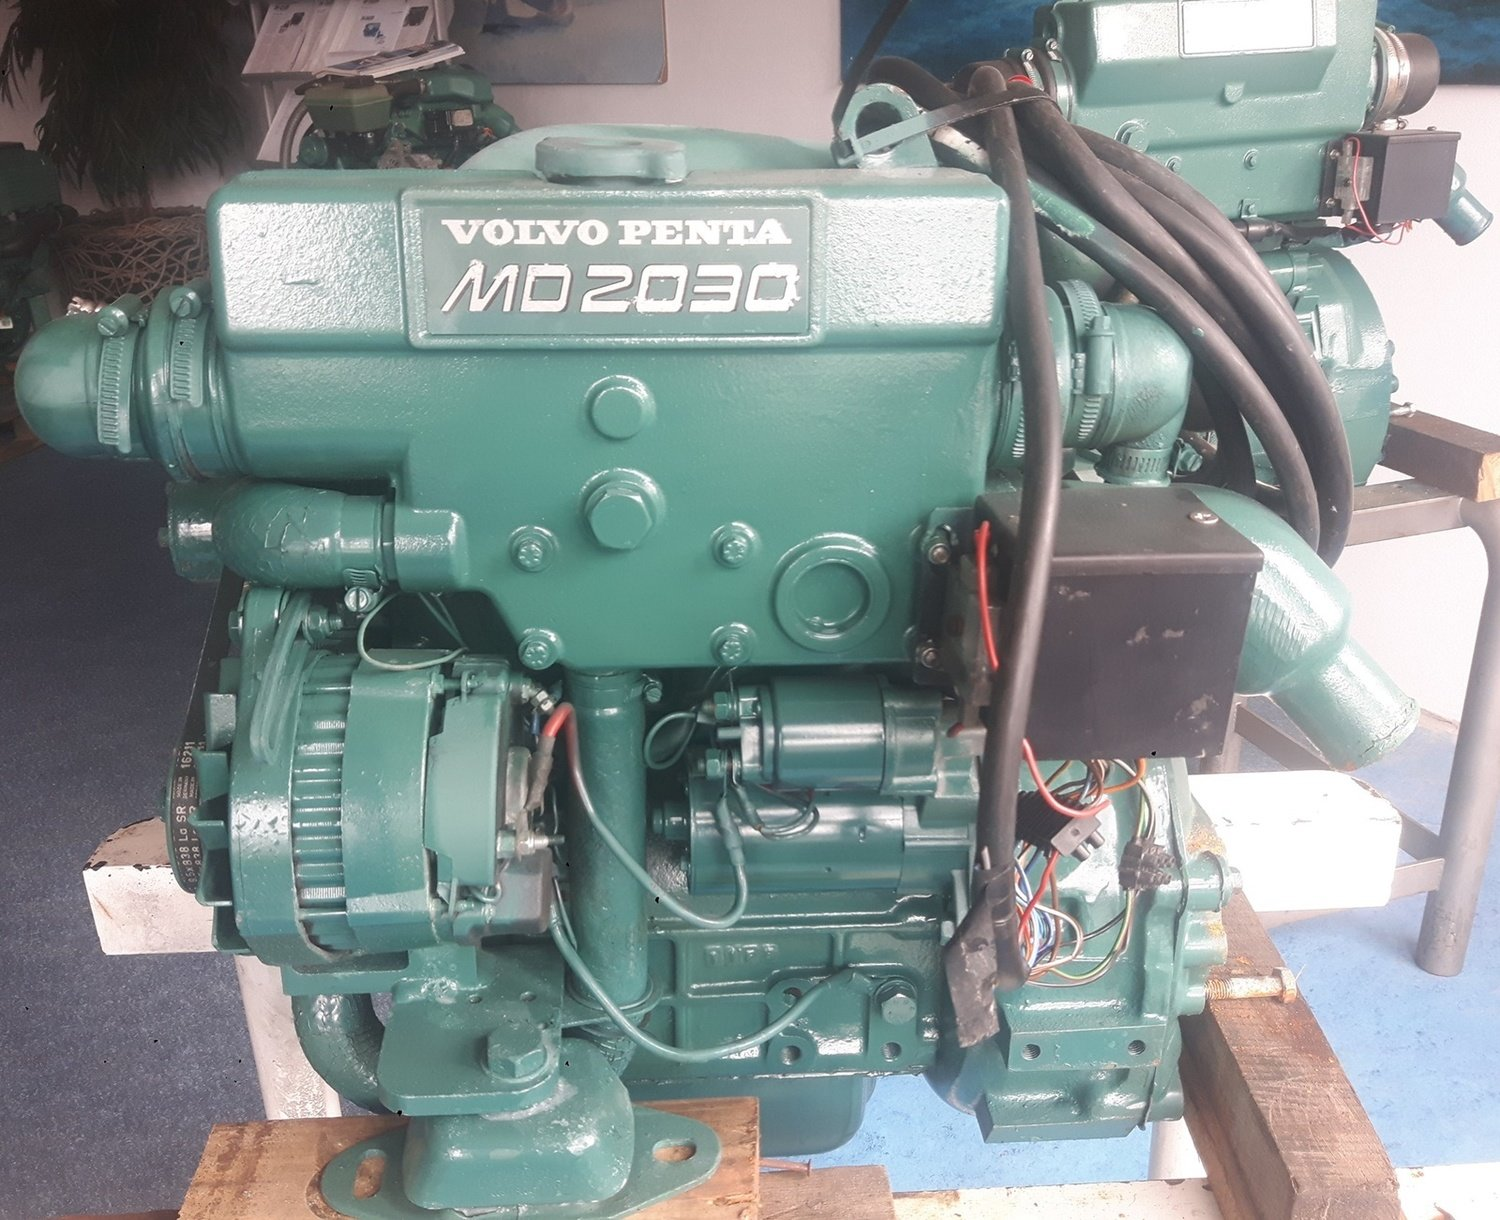 Volvo Penta 2030D Inboard marine diesel engine in very good condition